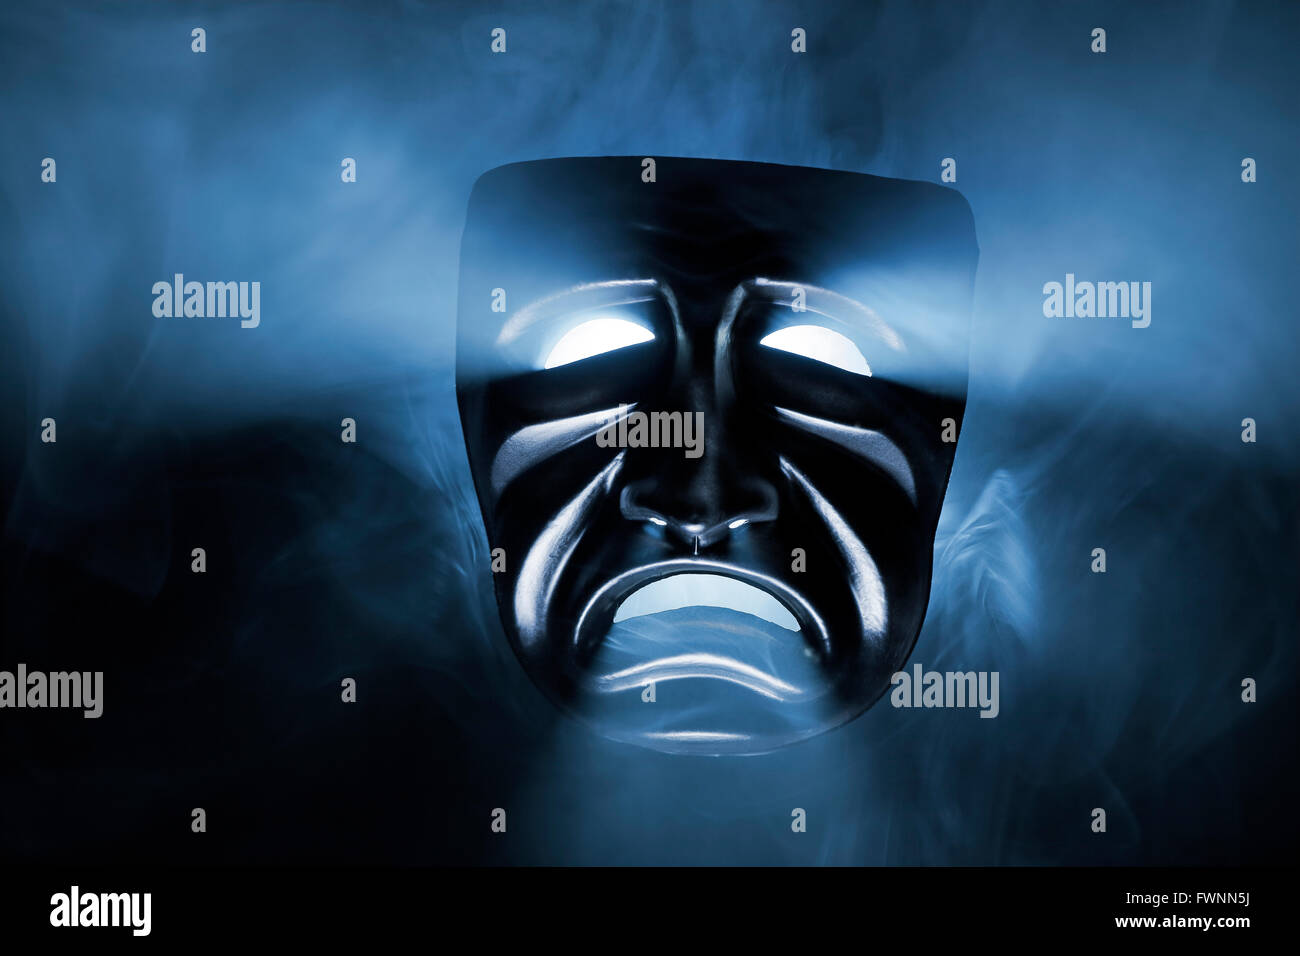 Black mask with light coming from its eyes and mouth. - Stock Image